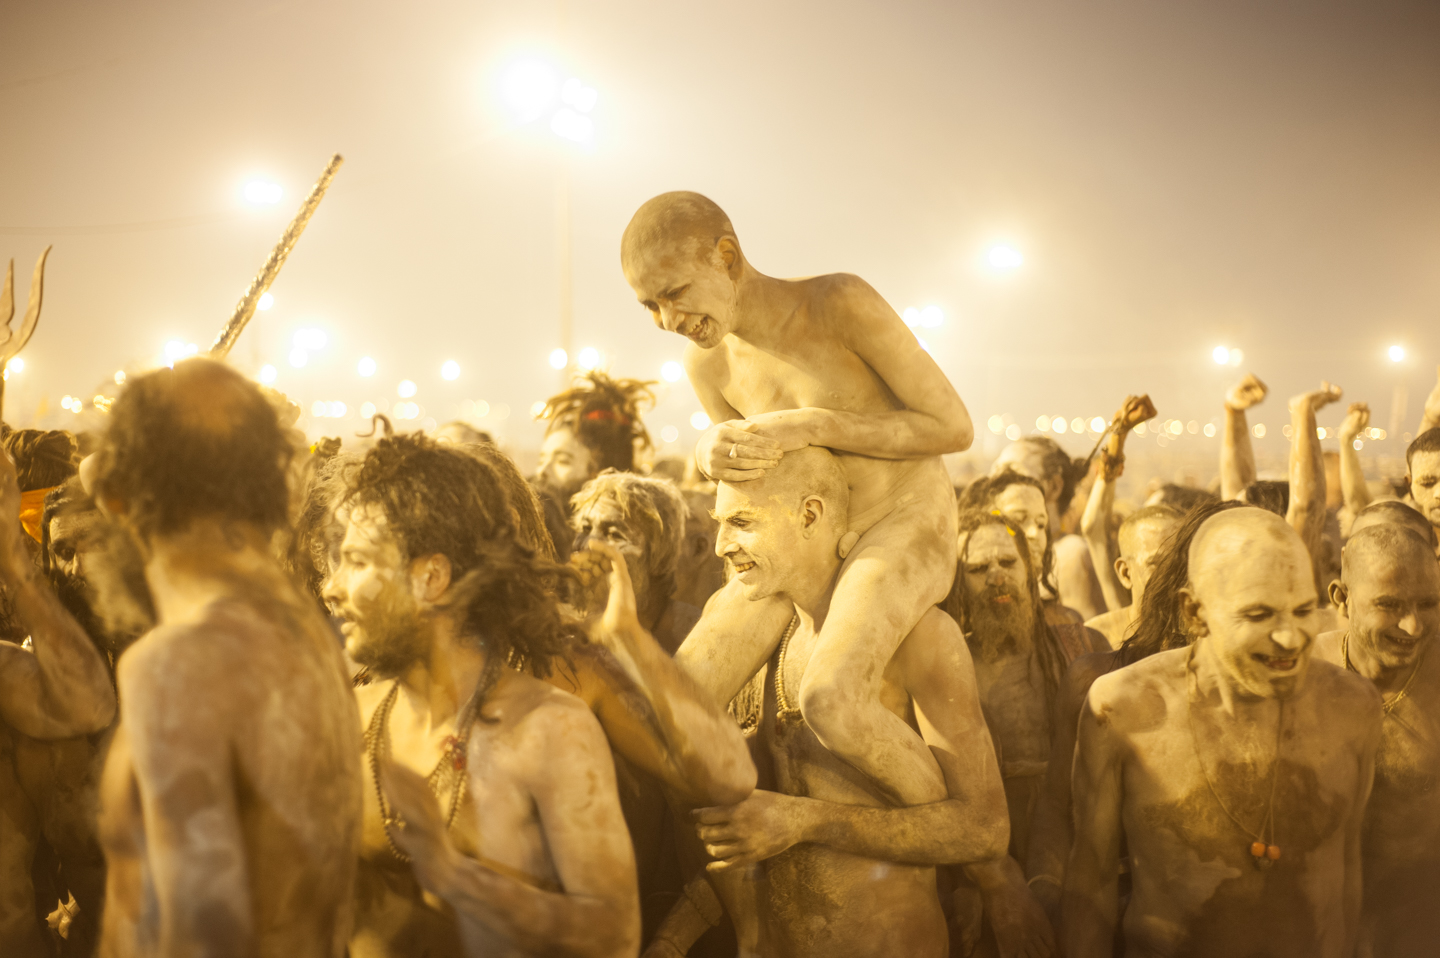 Sadhus after bathing